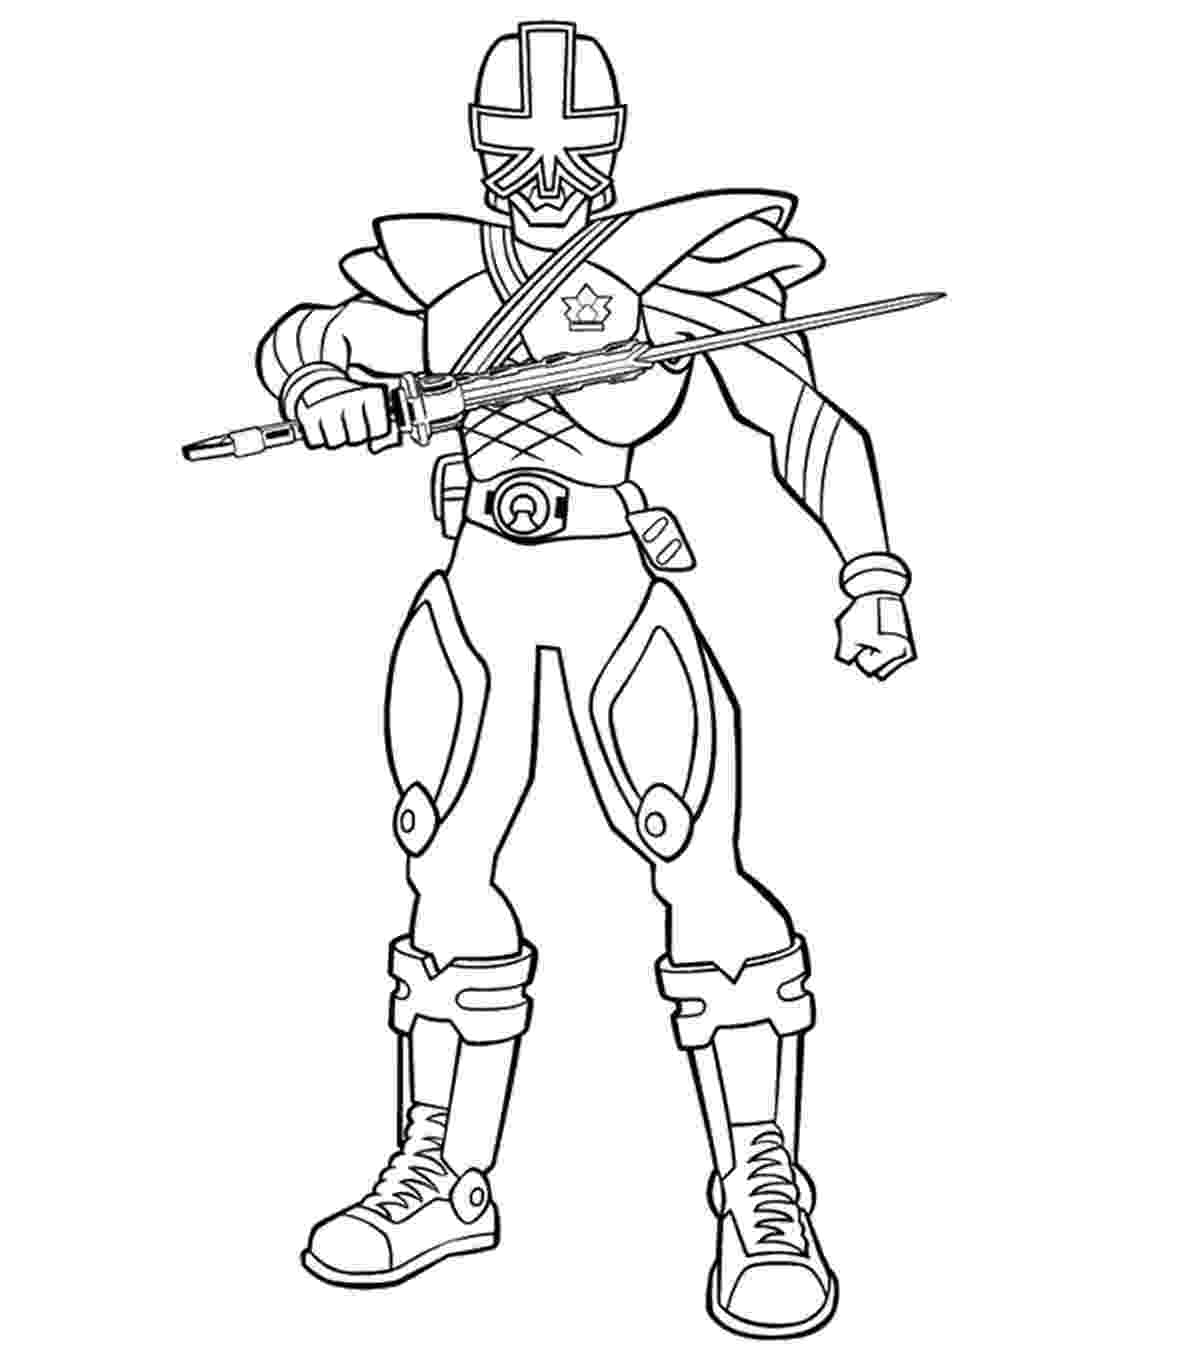 power rangers coloring book download free printable power rangers coloring pages to coloring book rangers power